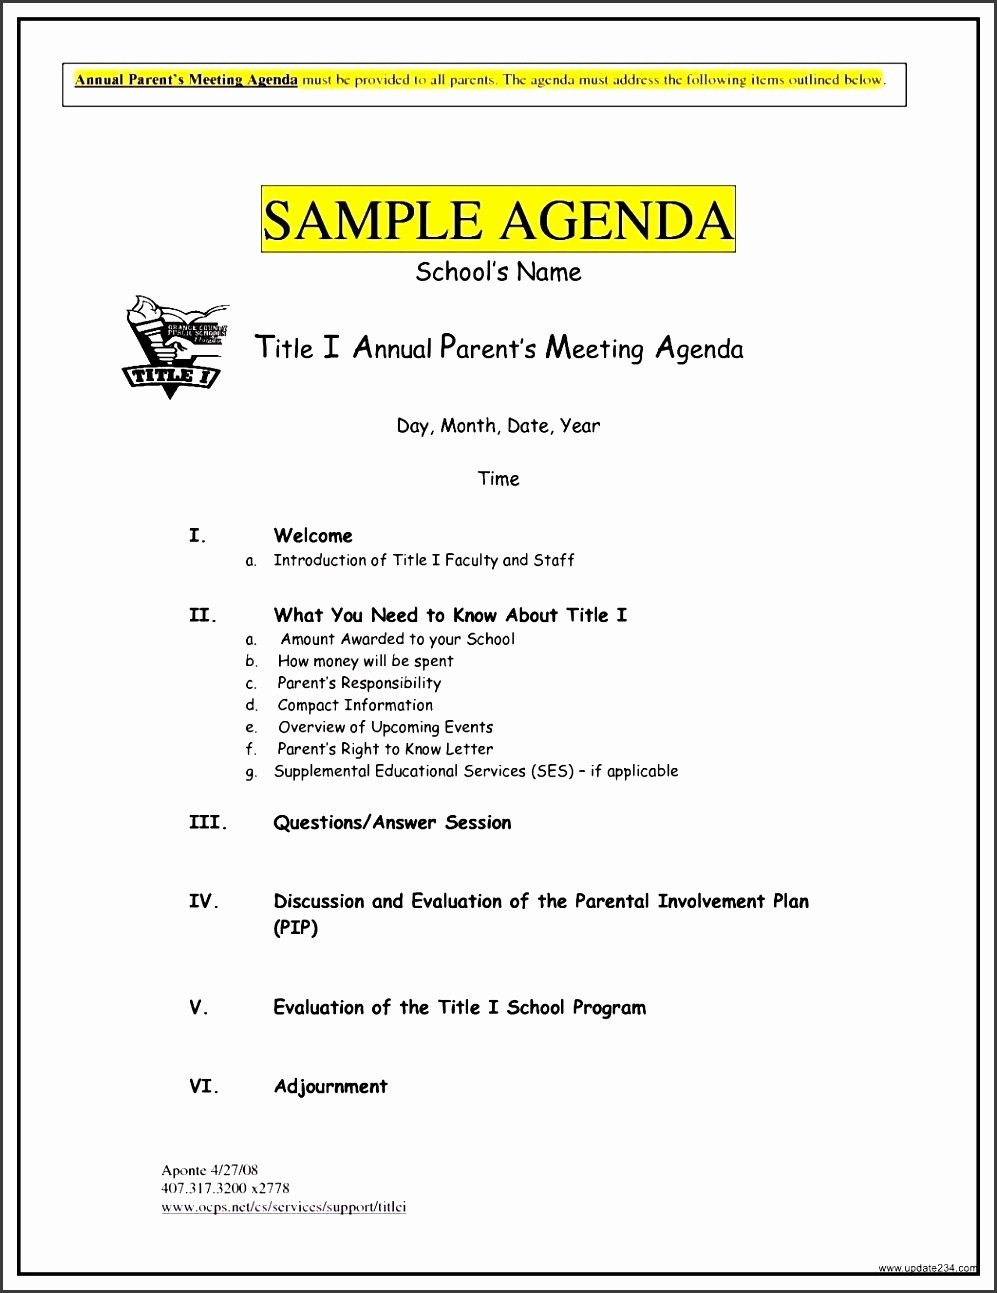 Ms Office Meeting Agenda Template Best Of 6 Meeting Agenda Templates Sampletemplatess